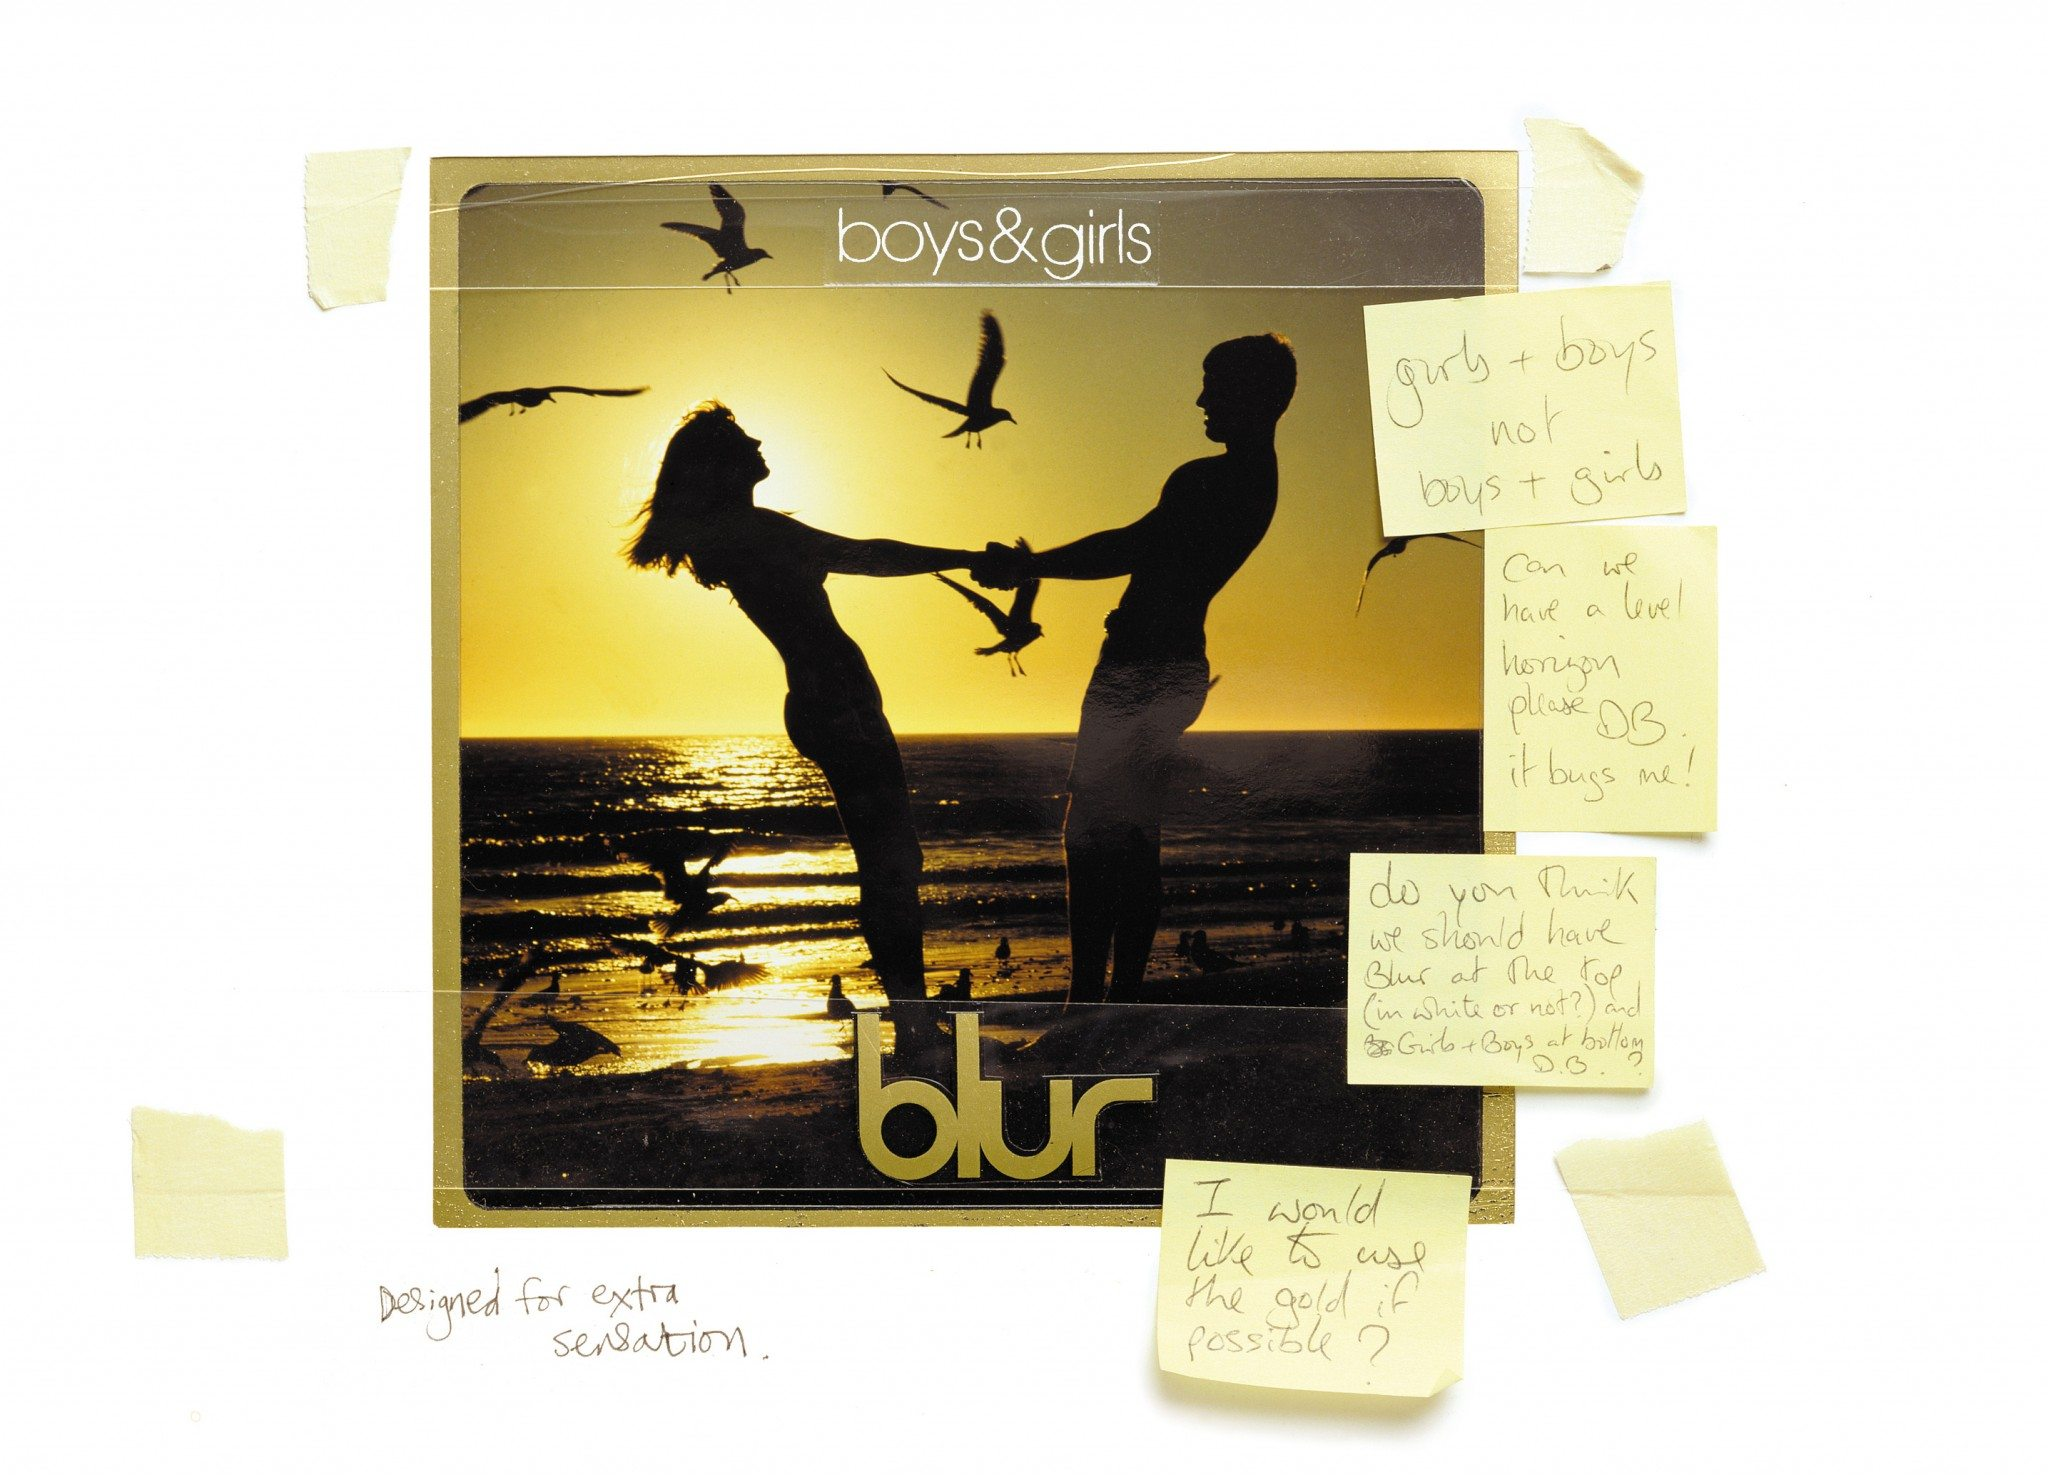 Blur-BOYS-GIRLS-HI-RES